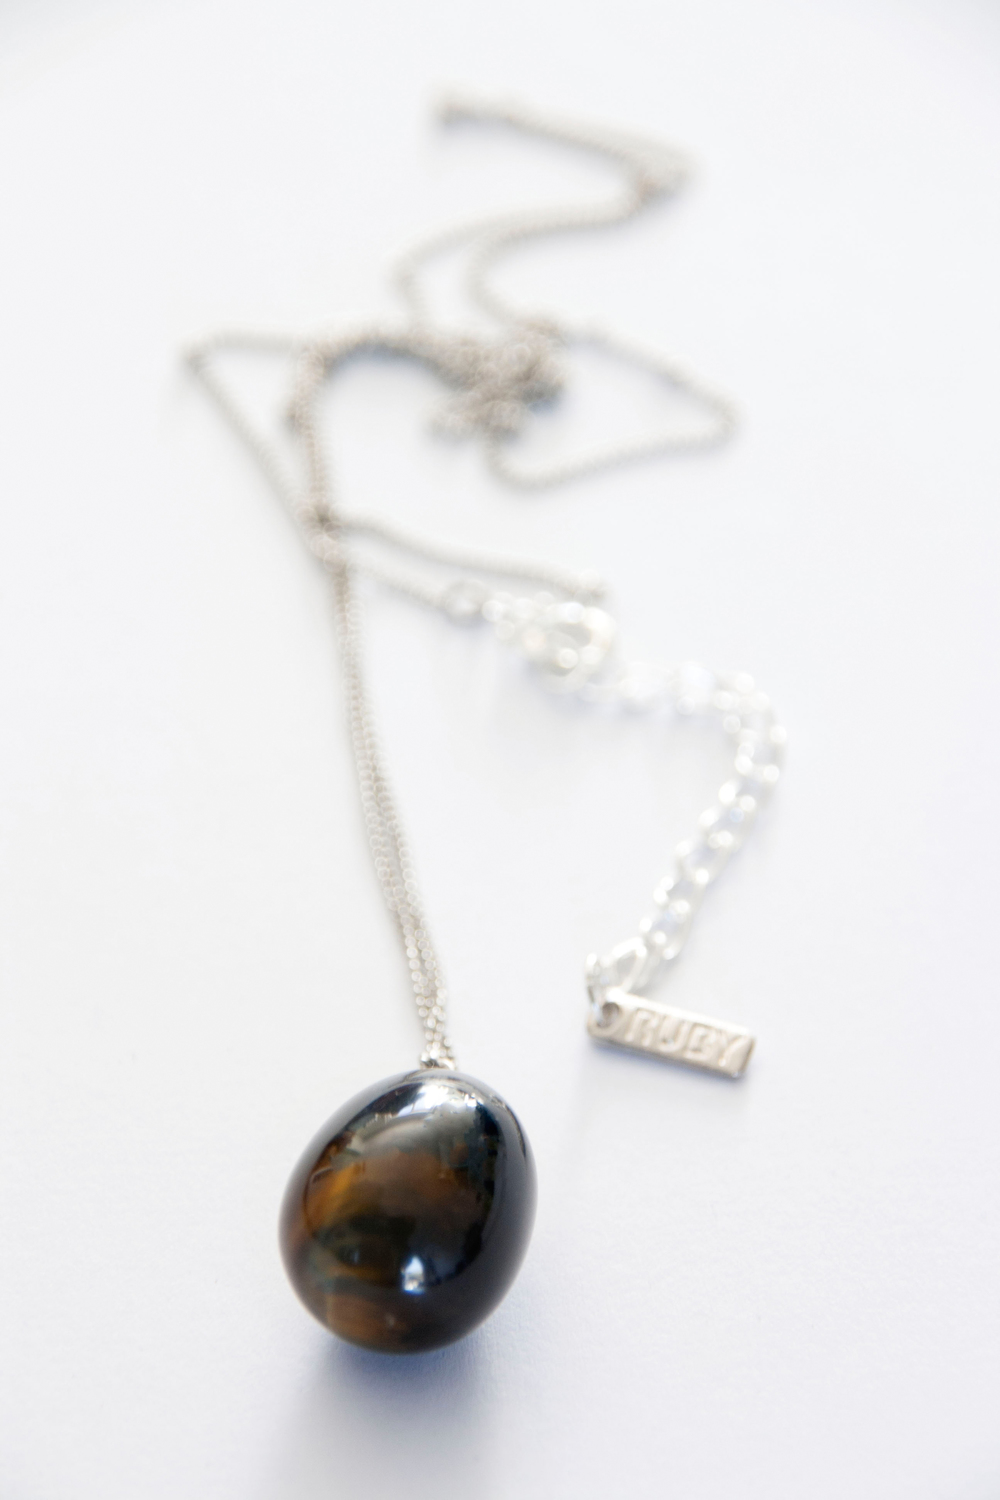 Blue Tiger's Eye Polished Ball pendnat (3207).jpg